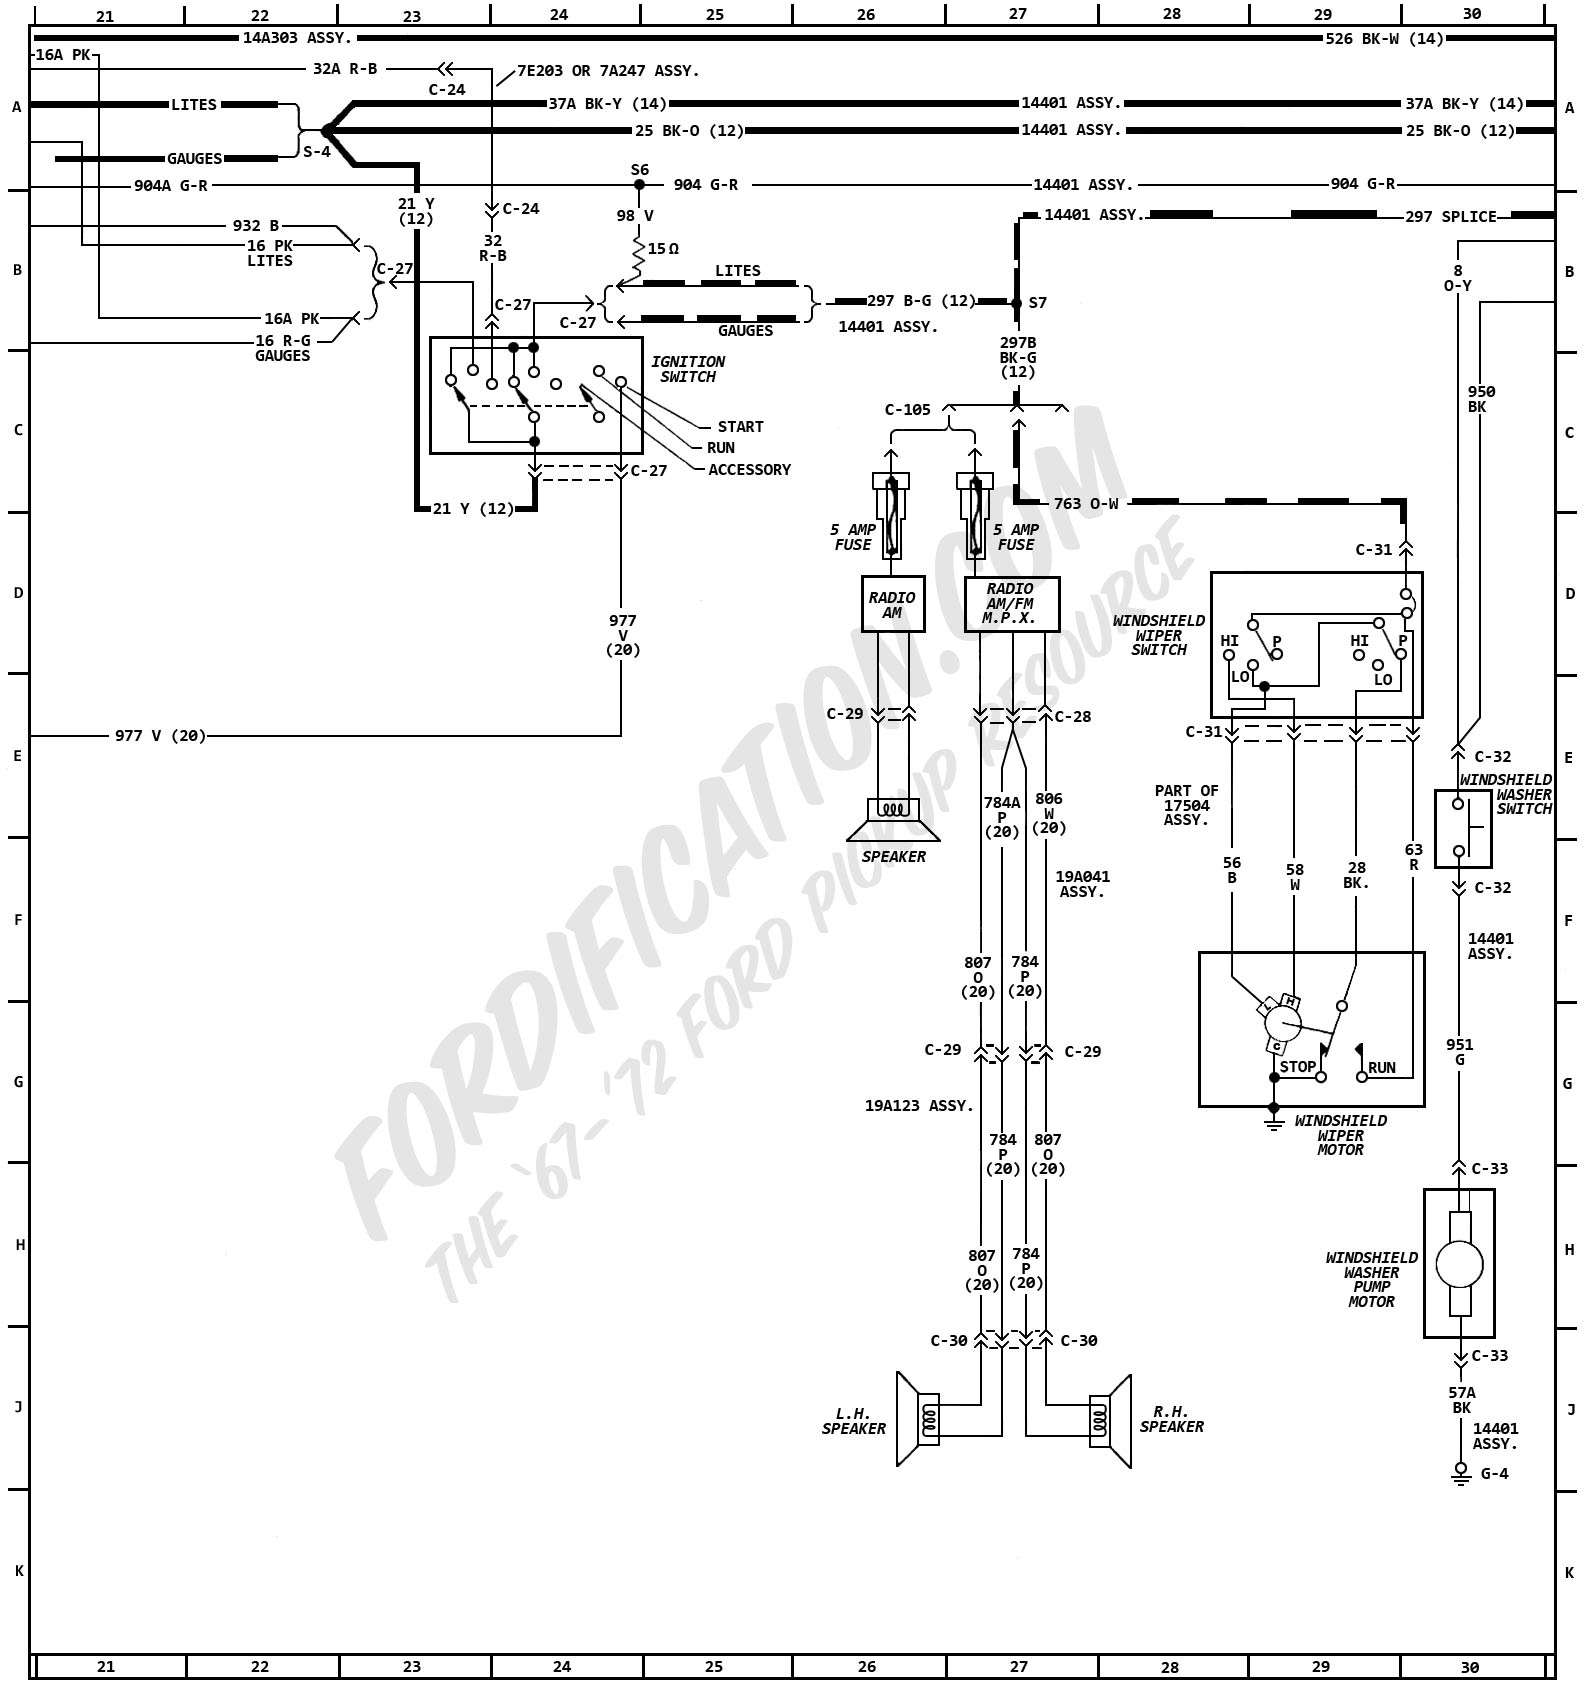 1972 ford truck wiring diagrams fordification com 2003 Ford Excursion Wiring Schematic  2012 Ford F350 Wiring Diagrams 2012 Ford F350 Trailer Wiring Diagram 2003 Ford F-350 Wiring Diagram